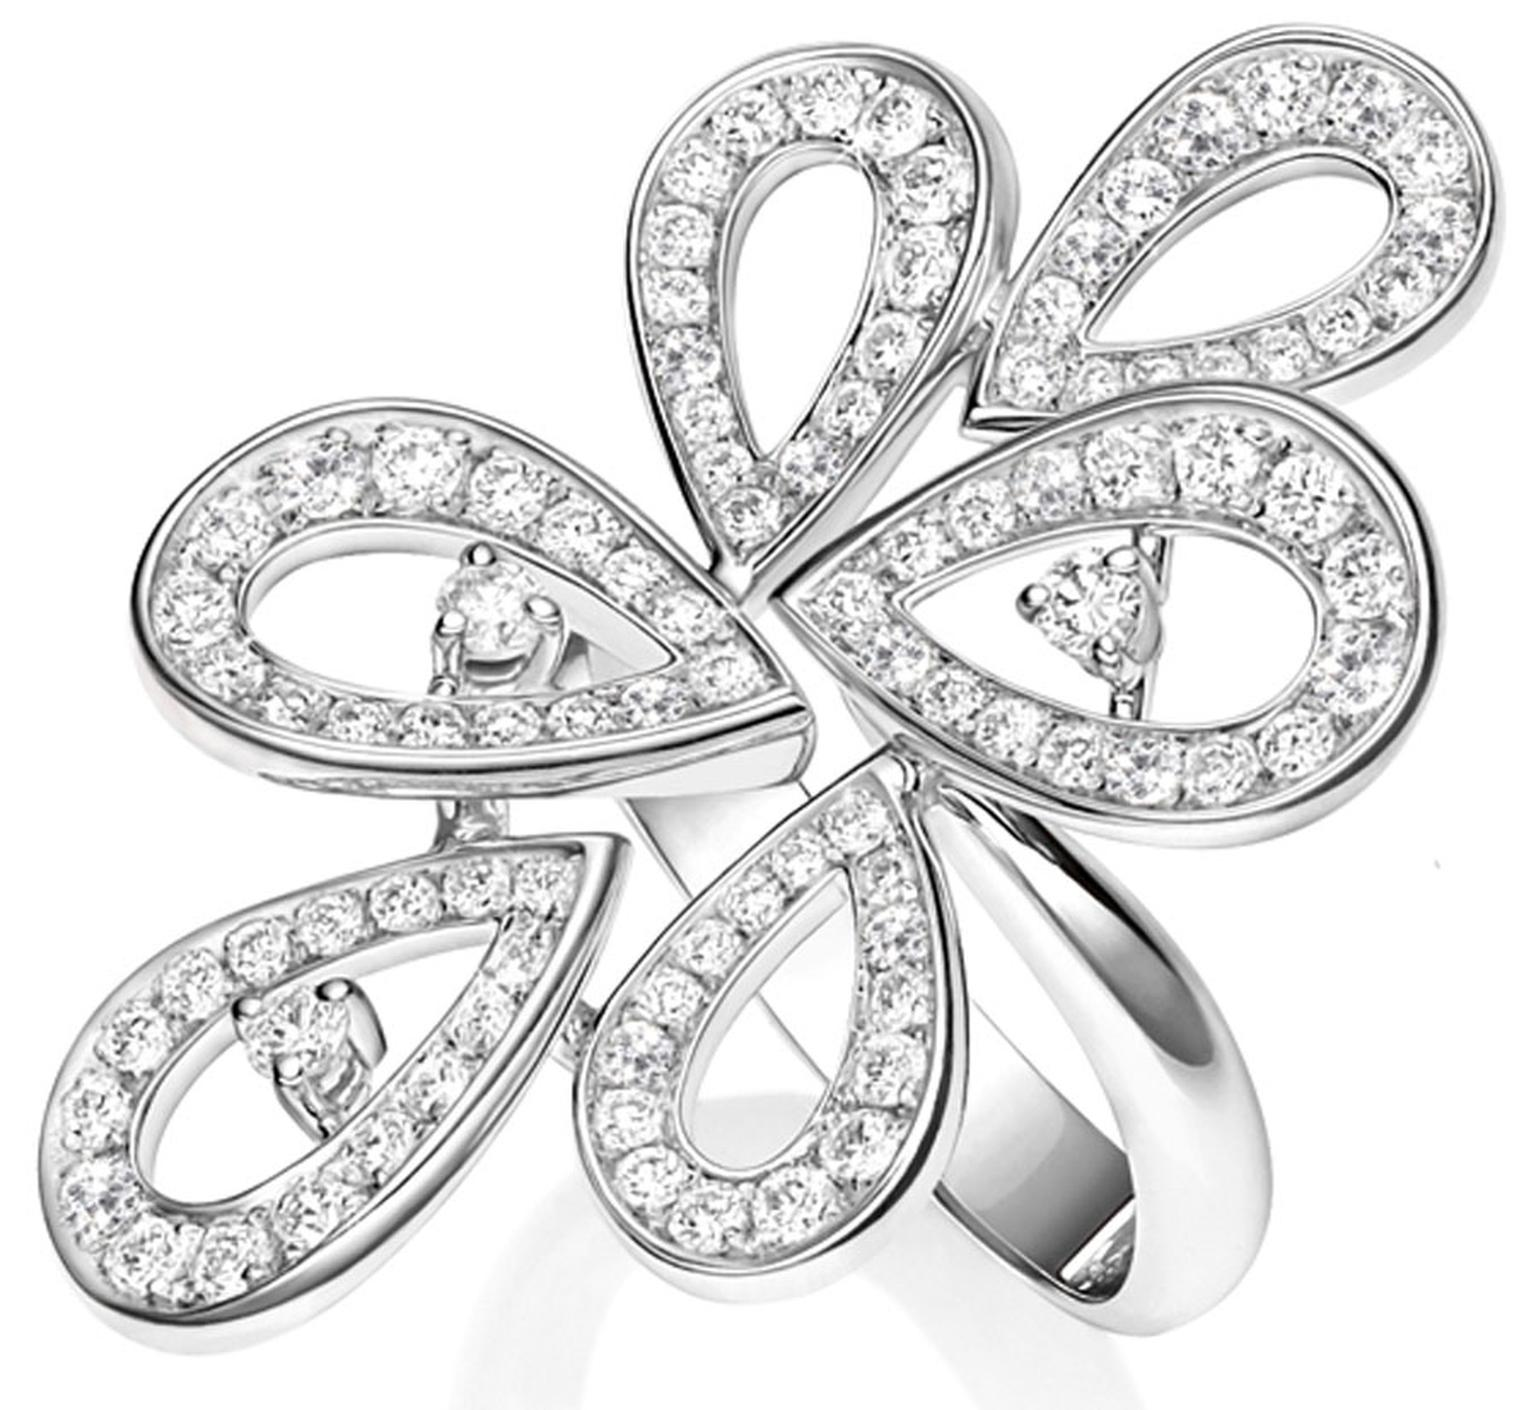 Montblanc_Collection_Princesse_Grace_de_Monaco_Petales_de_Rose_motif_ring_107964